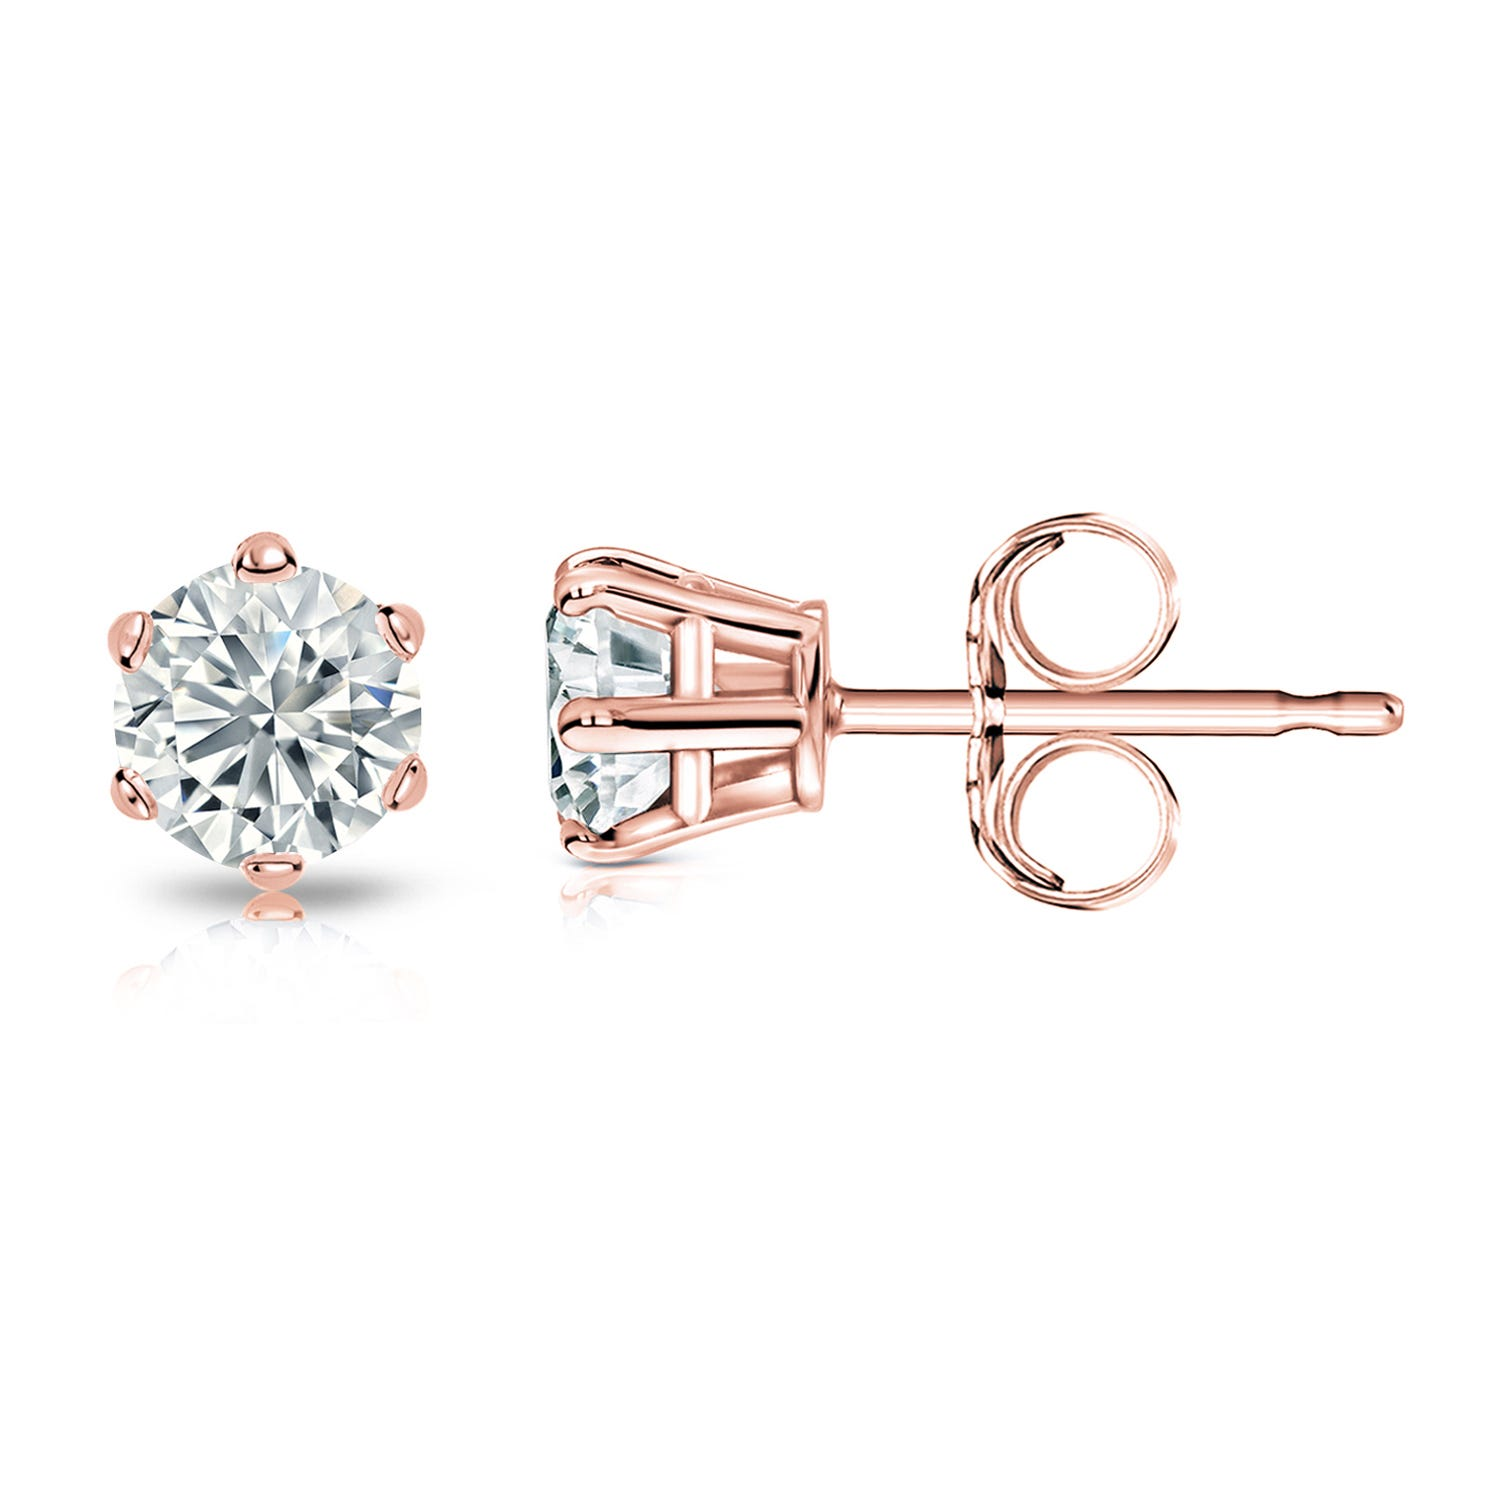 Round Diamond 5/8ctw. (IJ-I2) Solitaire Stud 6-Prong Earrings in 10K Rose Gold